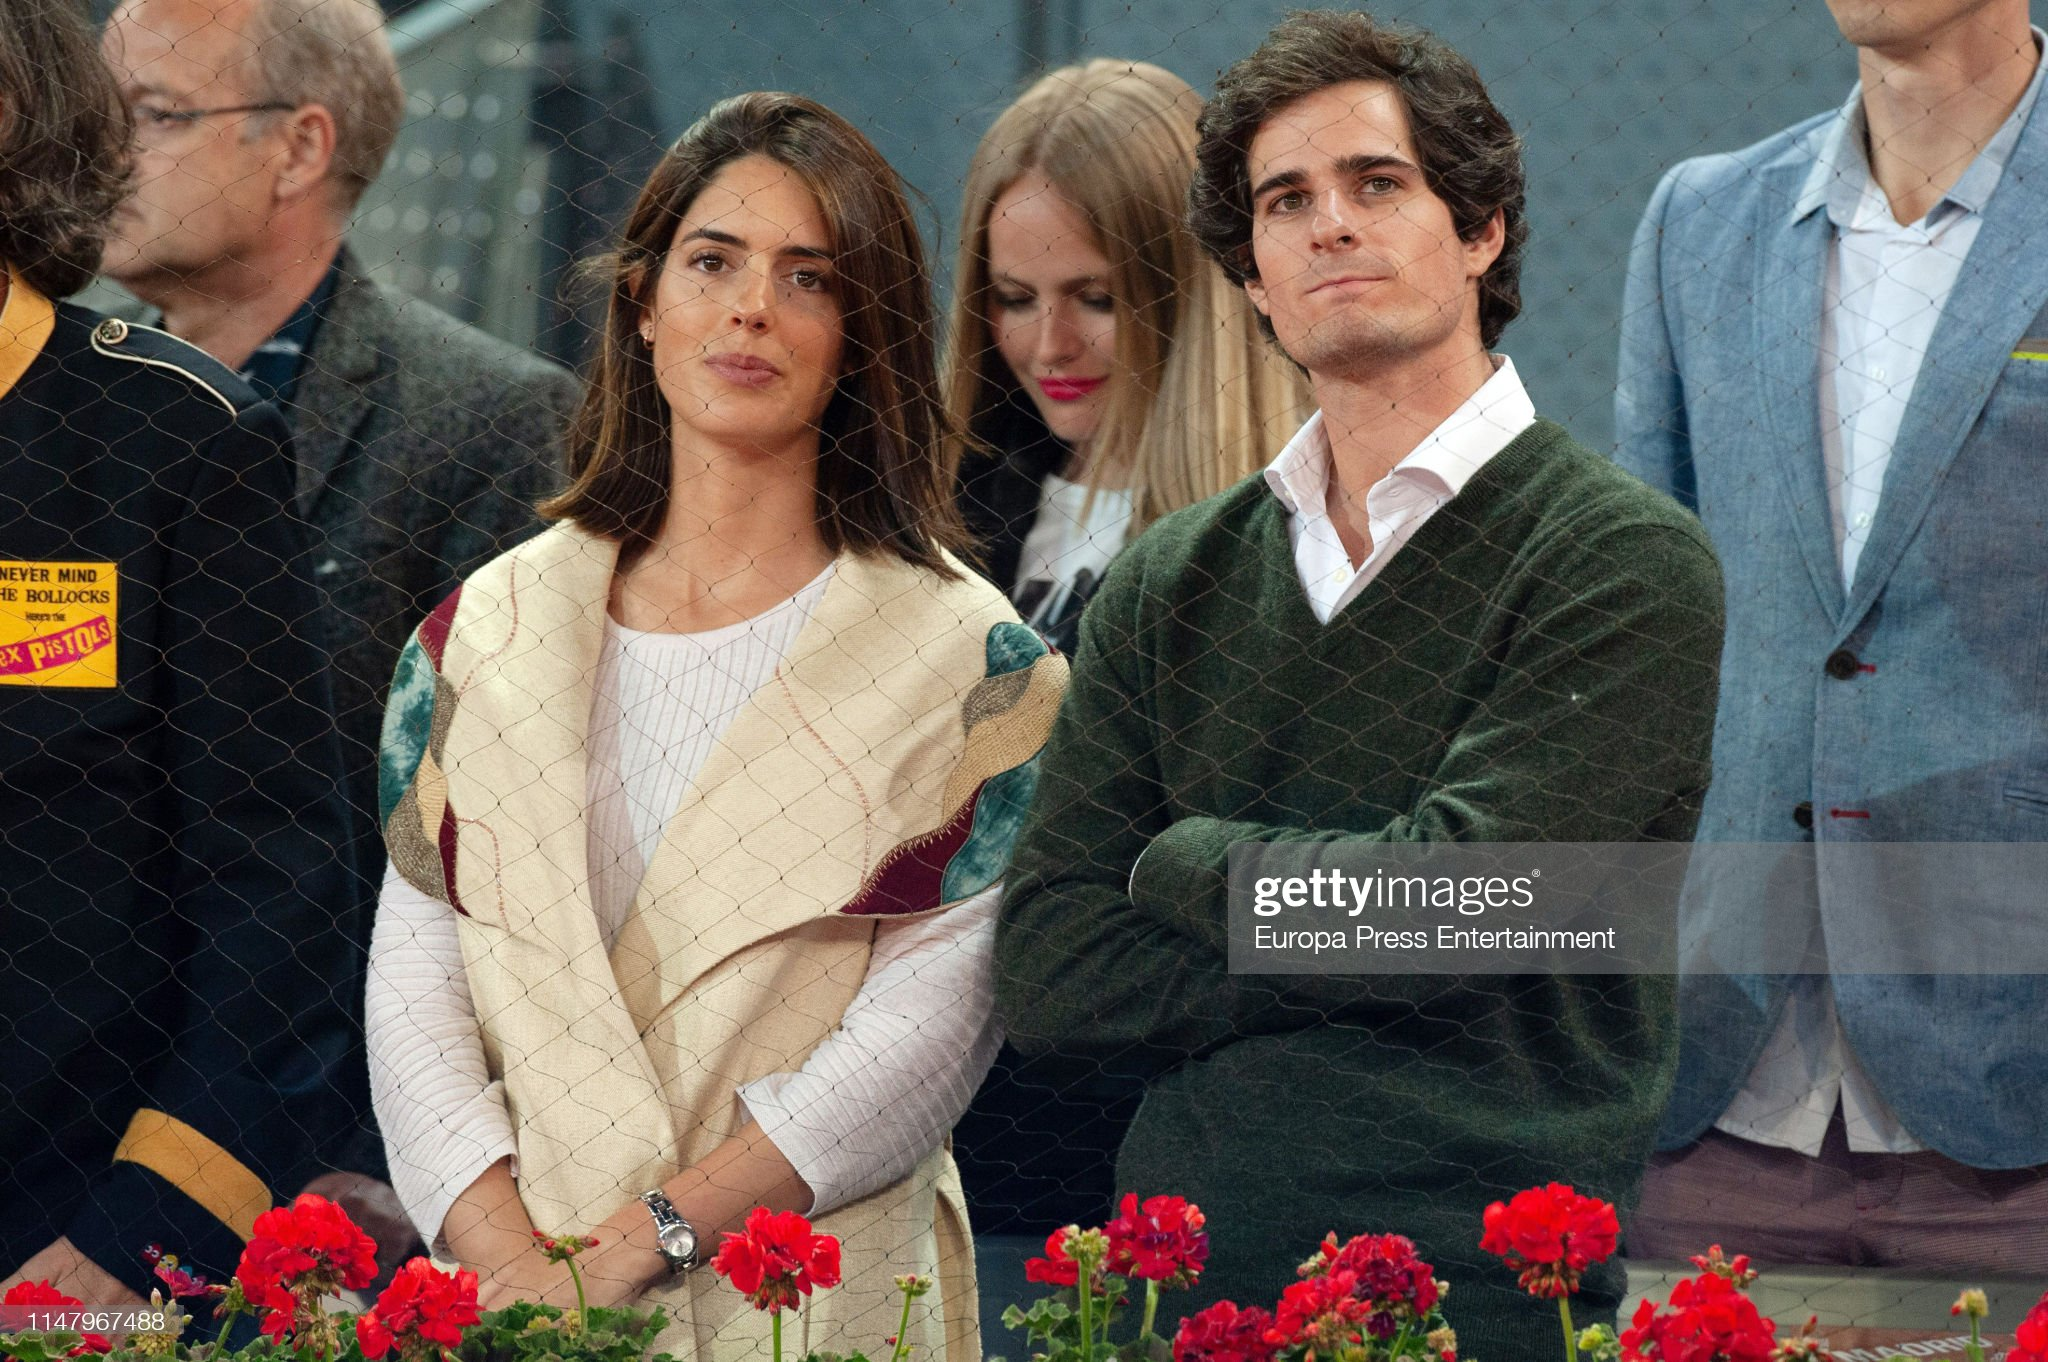 https://media.gettyimages.com/photos/fernando-fitzjames-stuart-y-sols-and-sofia-palazuelo-attend-mutua-picture-id1147967488?s=2048x2048